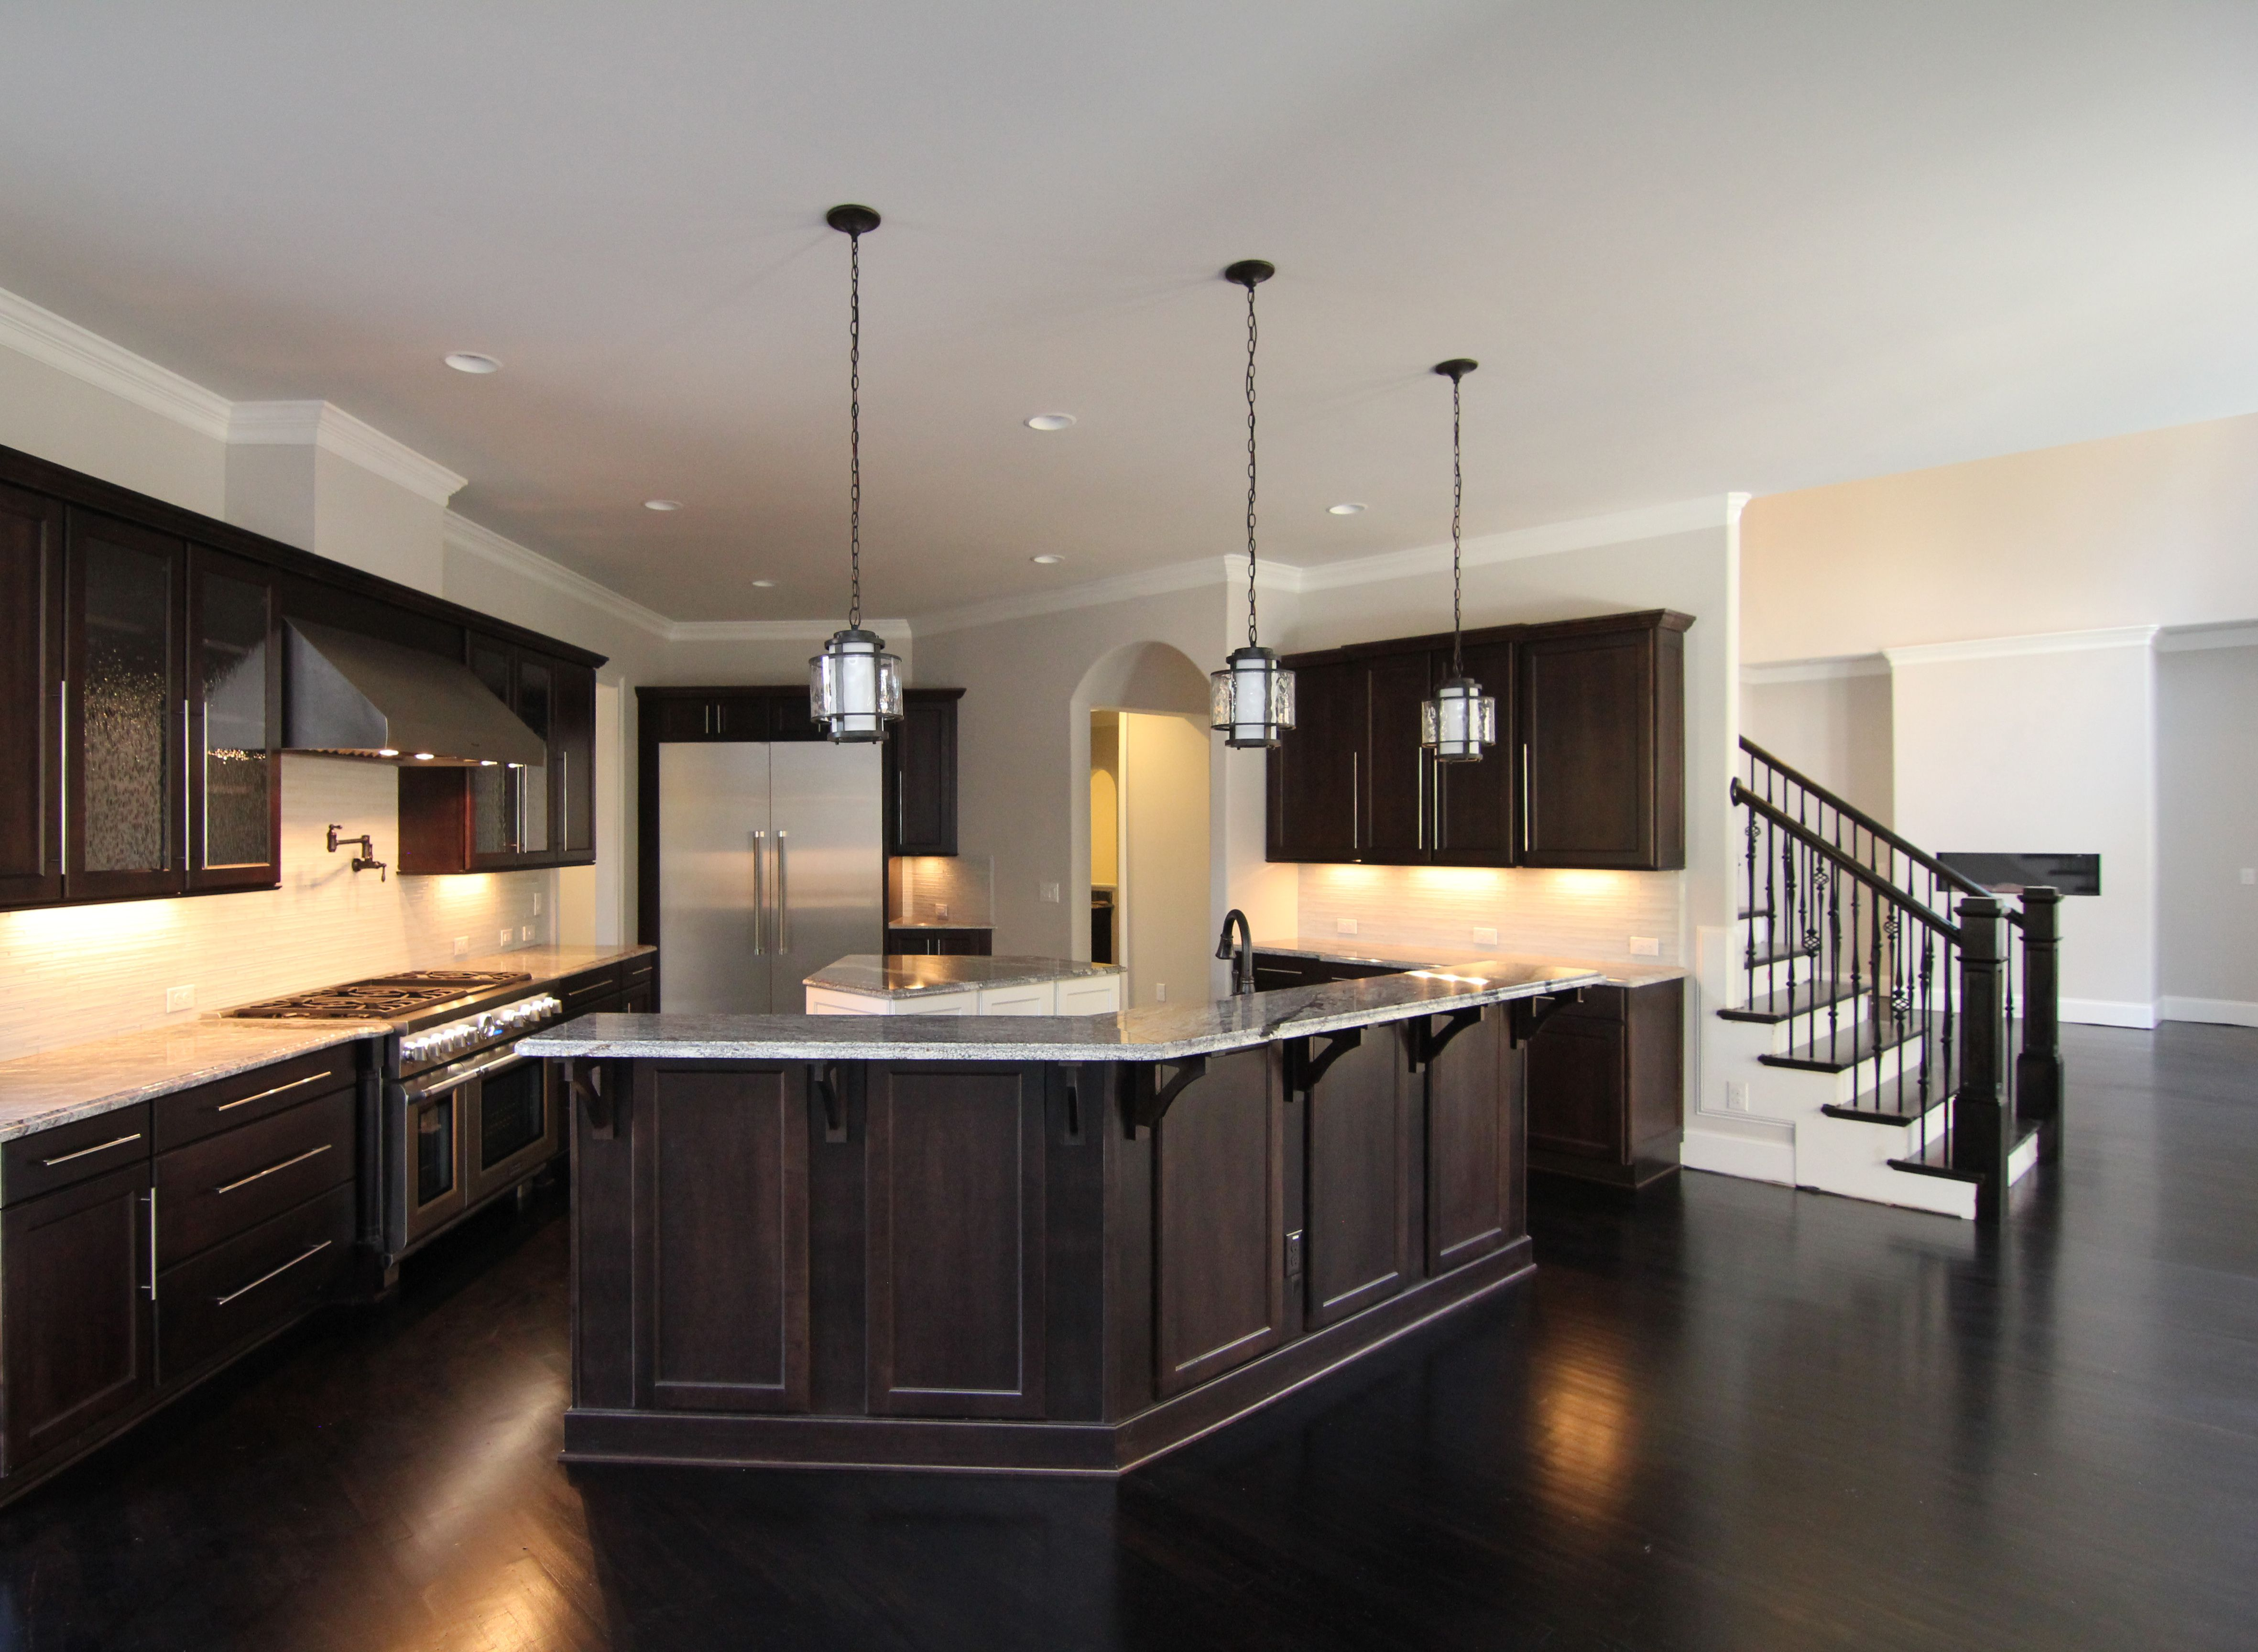 Wrap Around Kitchen Island With Eating Bar In Contemporary Style